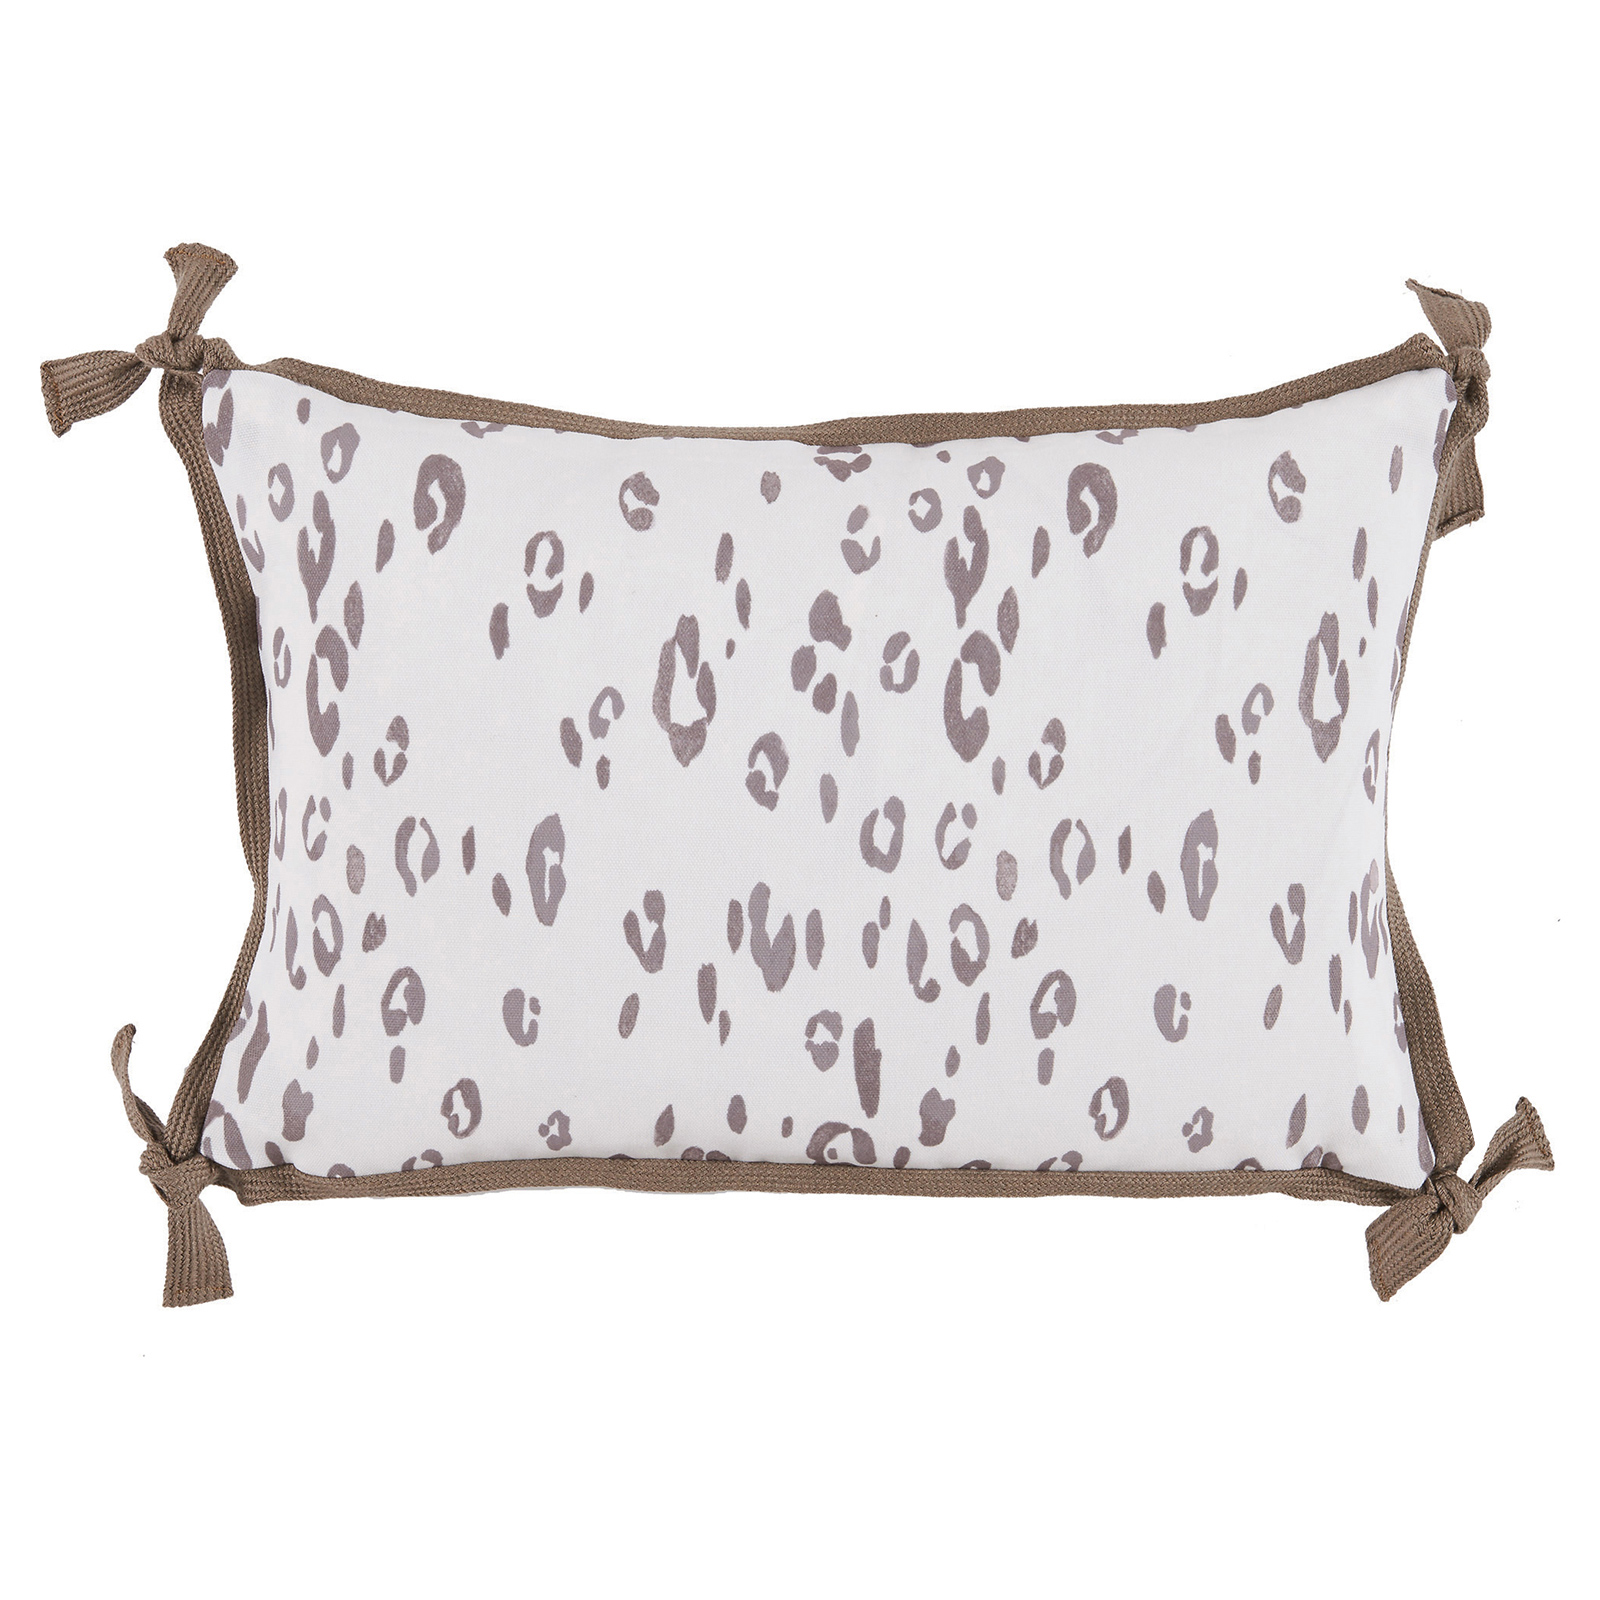 Hildy Modern Taupe Leopard Tie Outdoor Pillow - 13x19